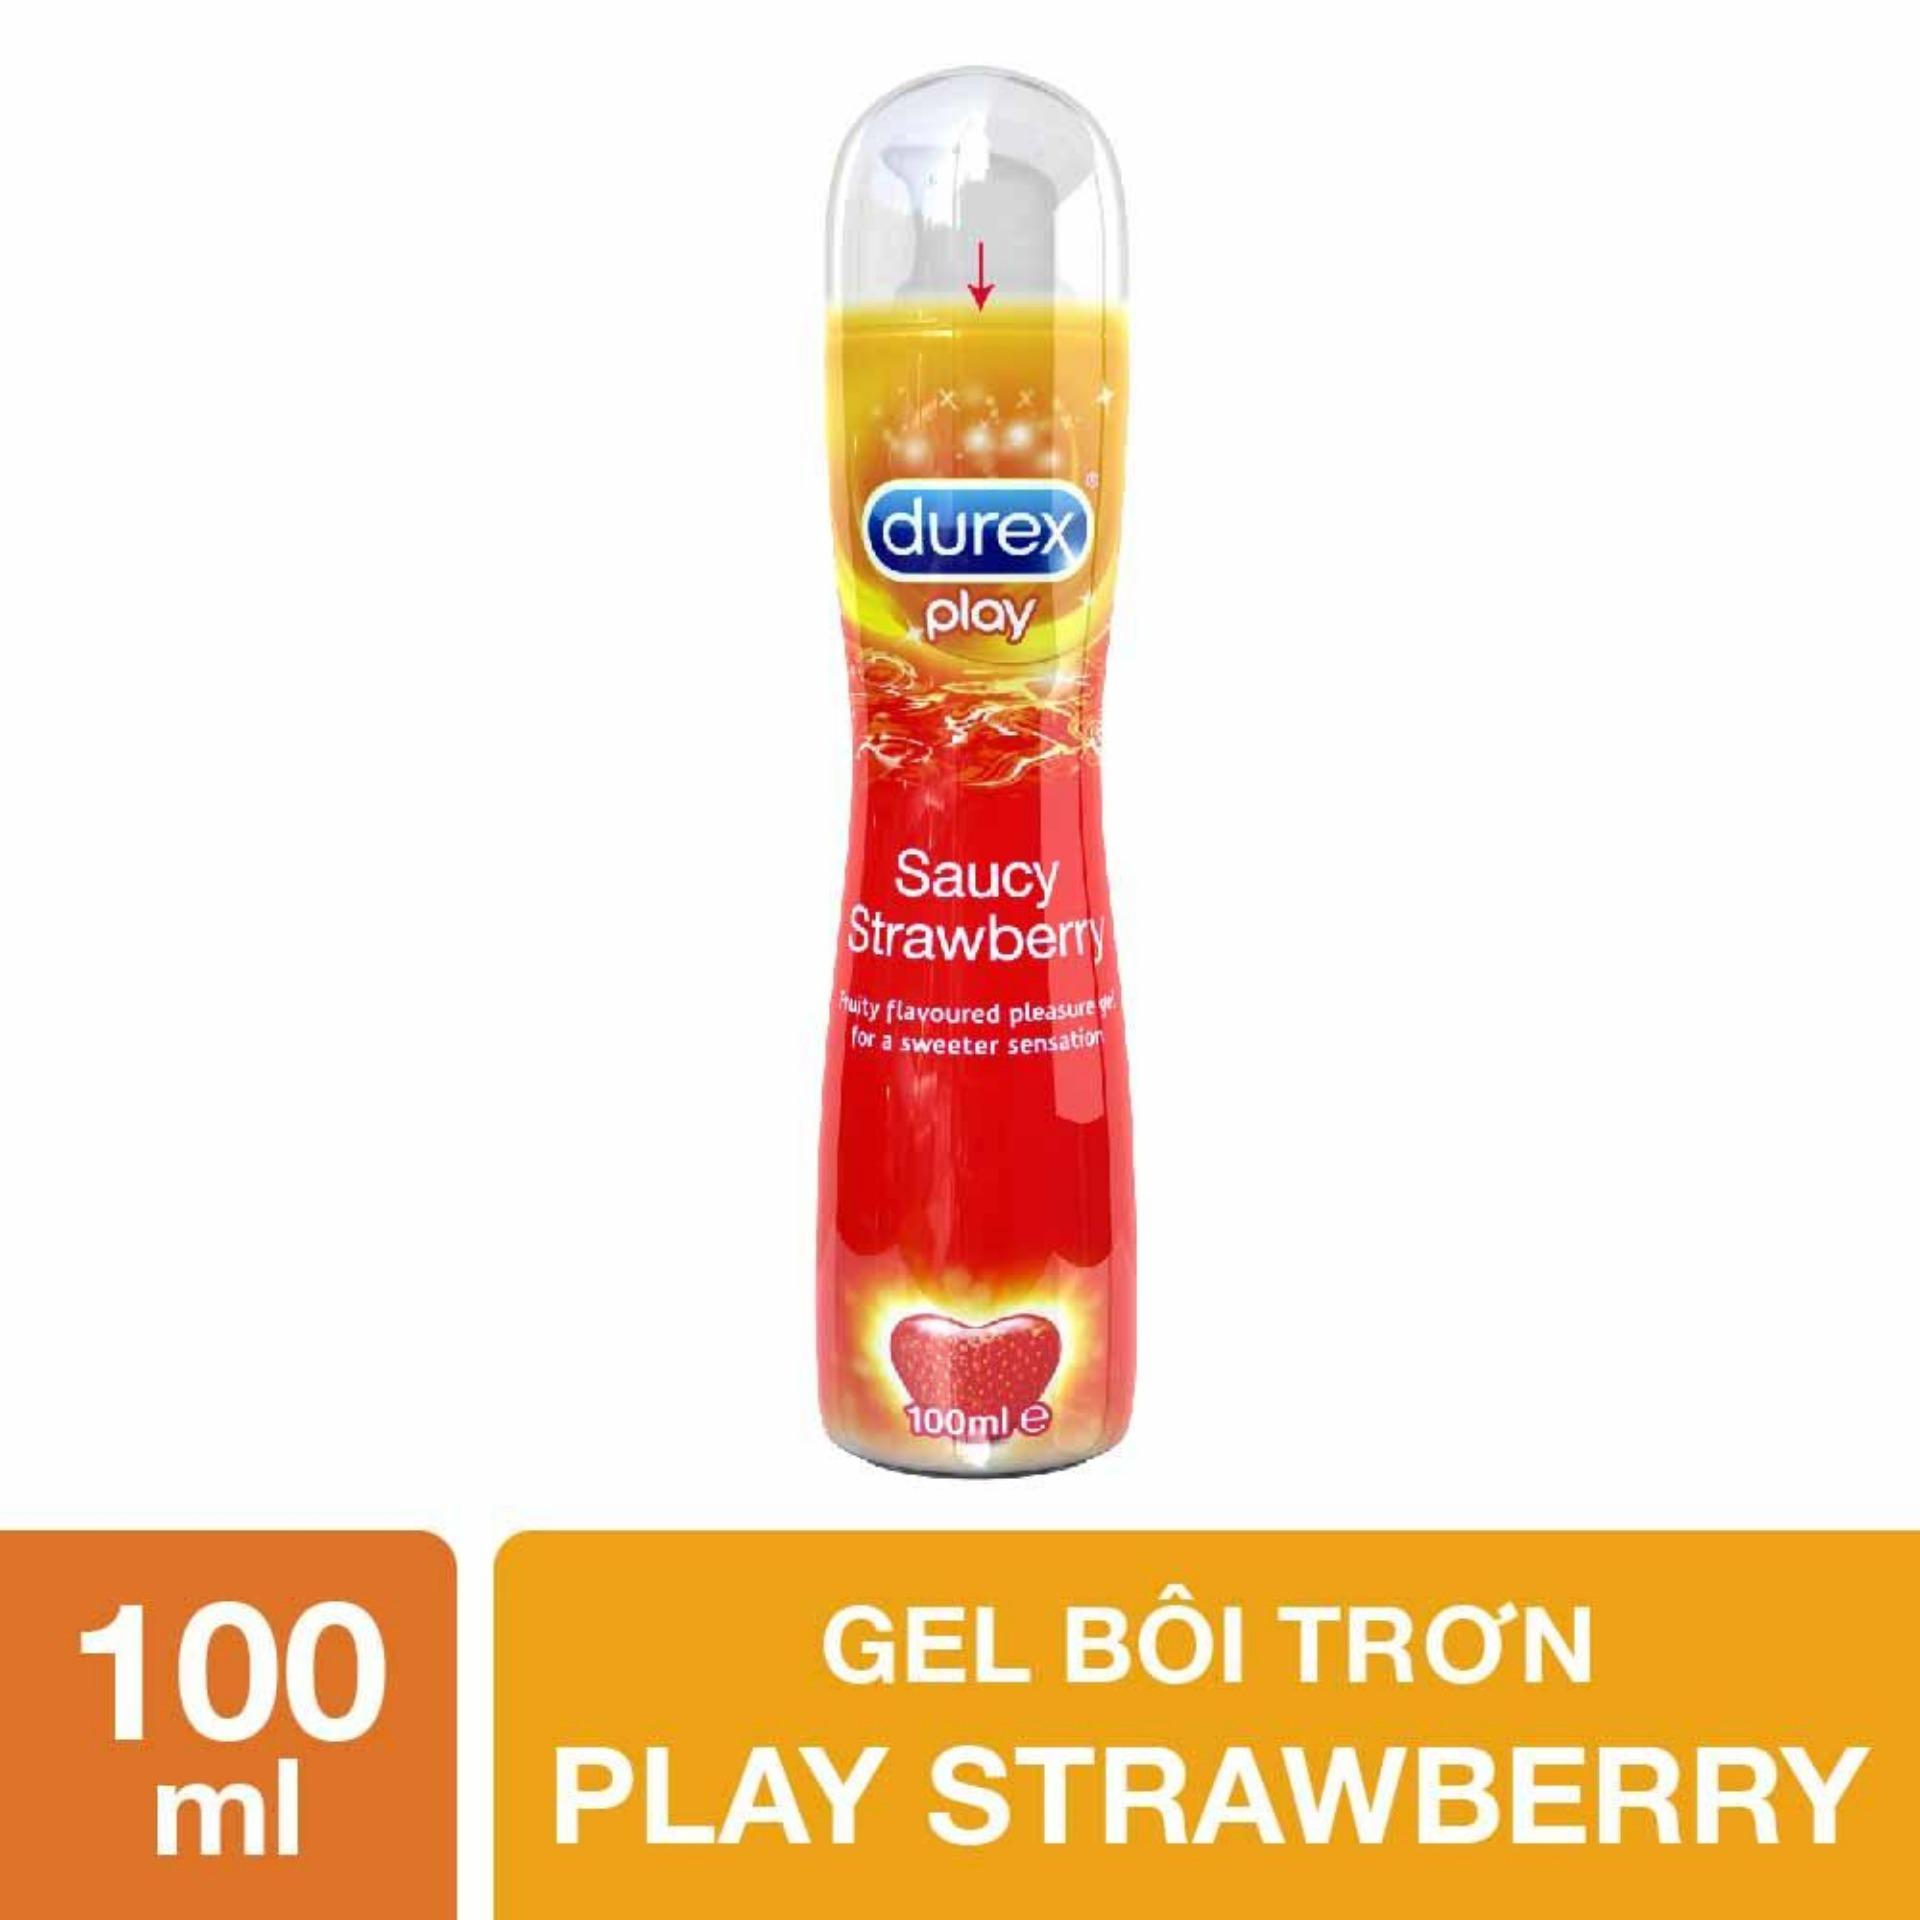 Gel bôi trơn Durex Play Strawberry 100ml